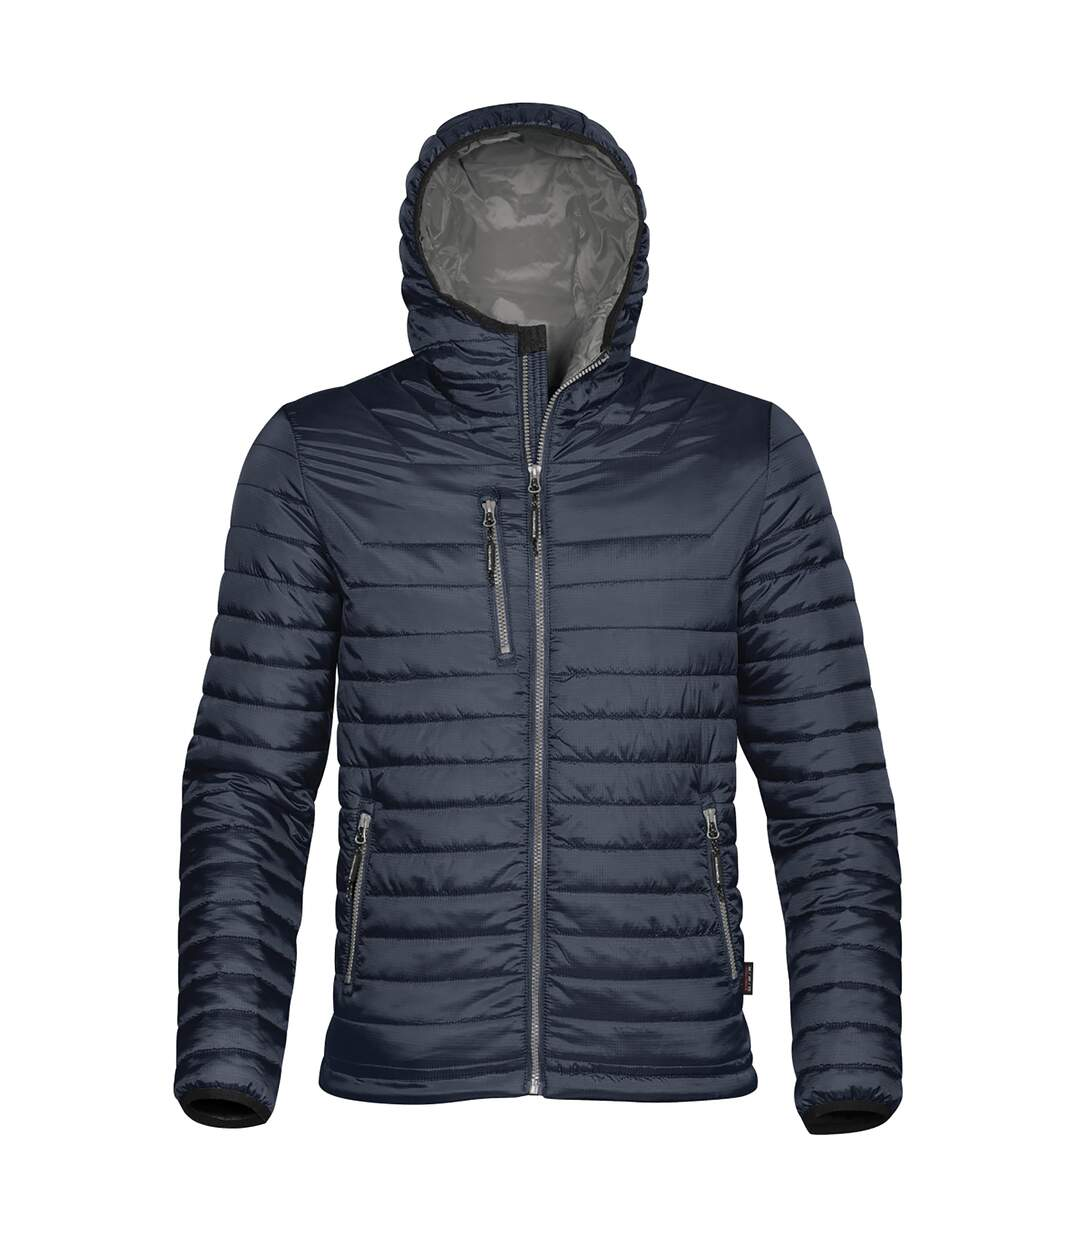 Stormtech Mens Gravity Hooded Thermal Winter Jacket (Durable Water Resistant) (Navy/Charcoal) - UTBC3064